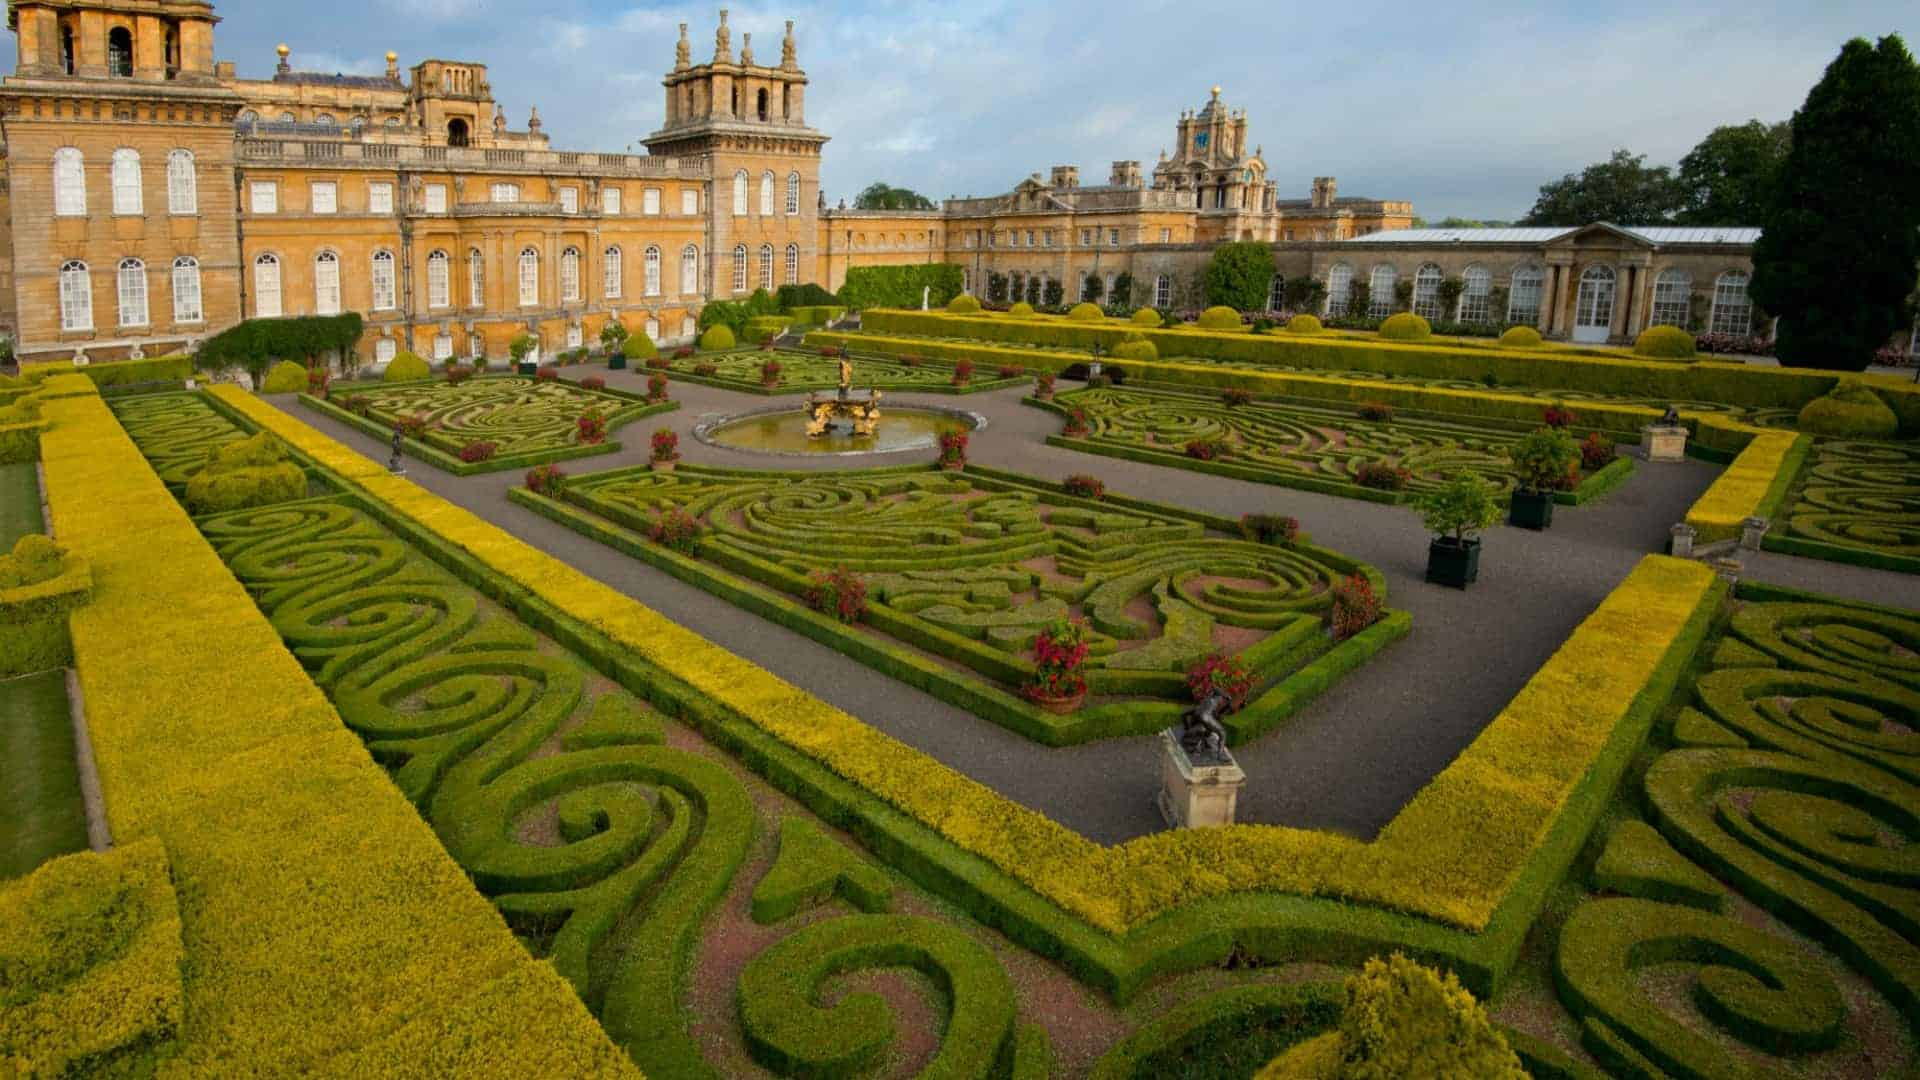 Palaces to visit in England